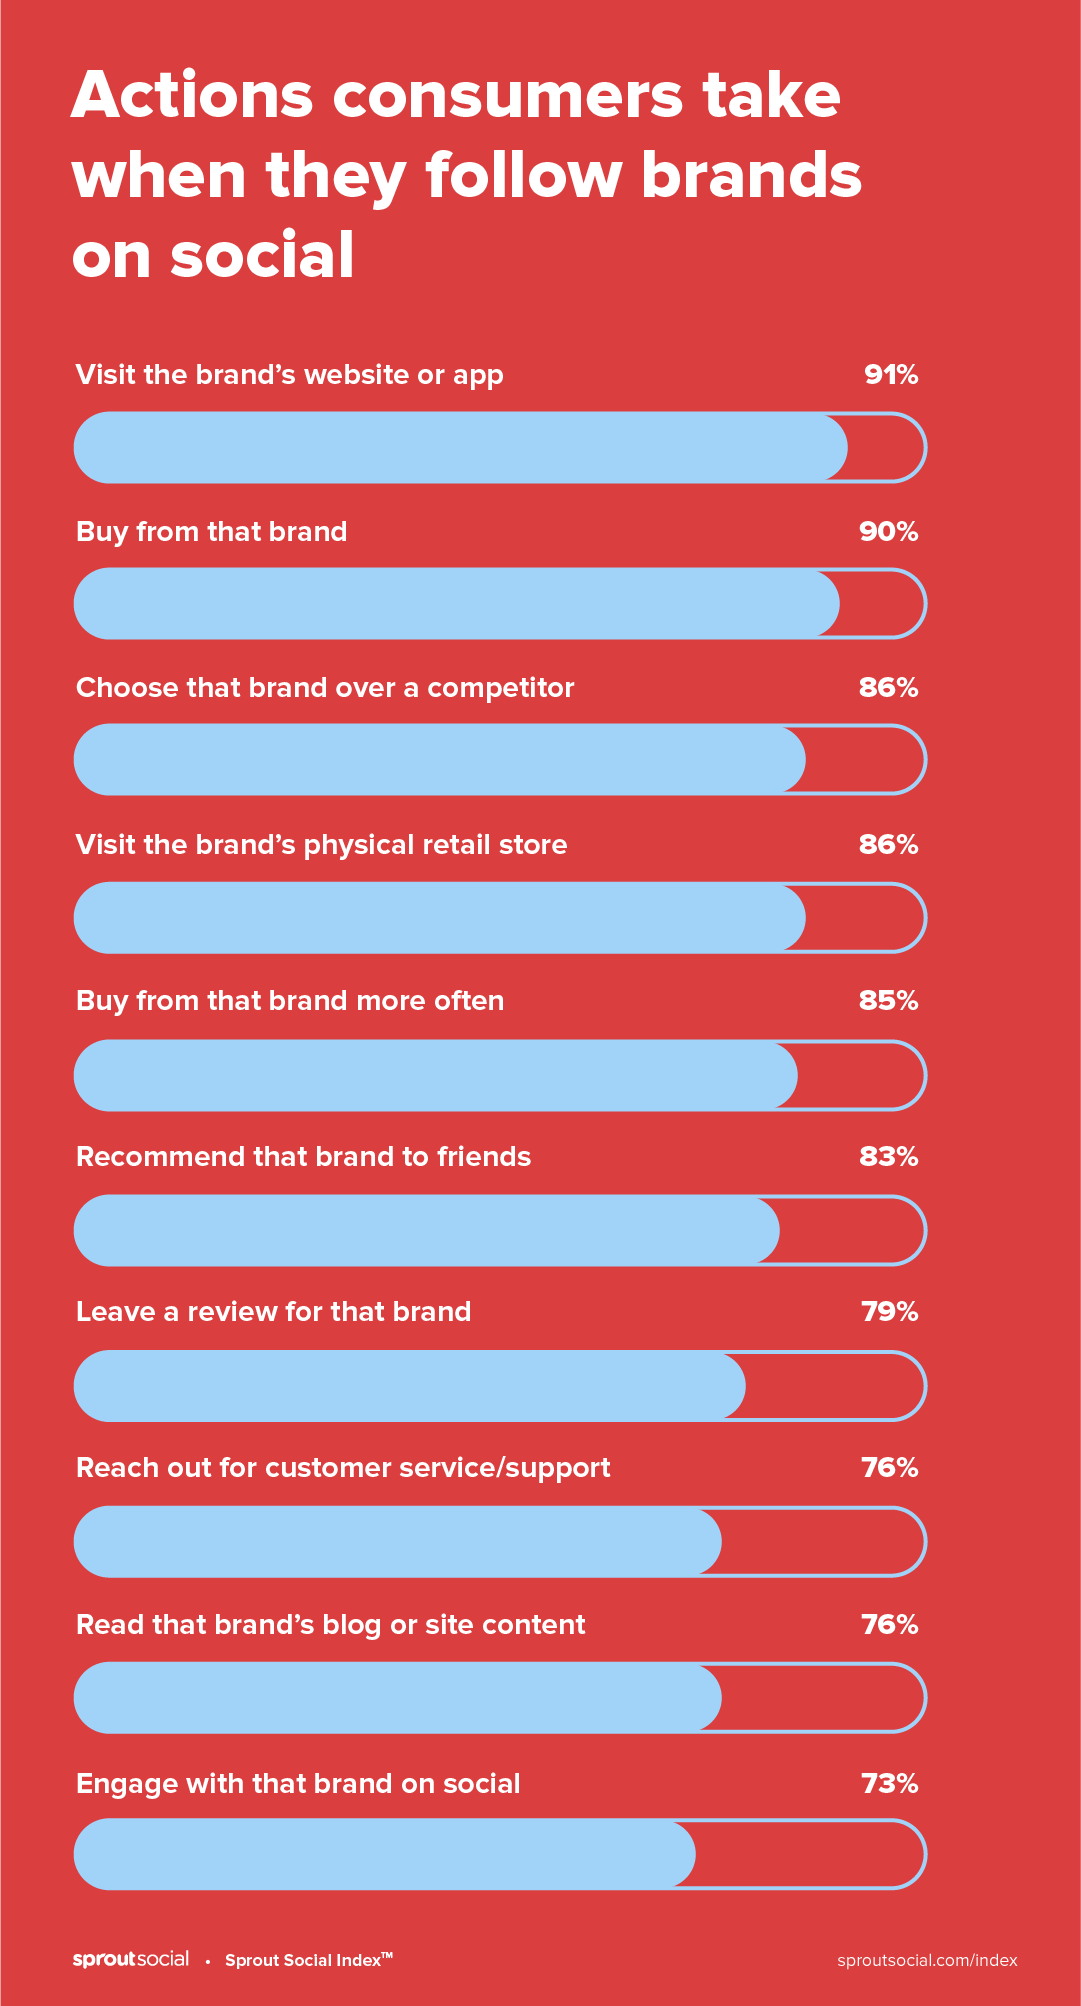 Actions consumers take when they follow brands on social